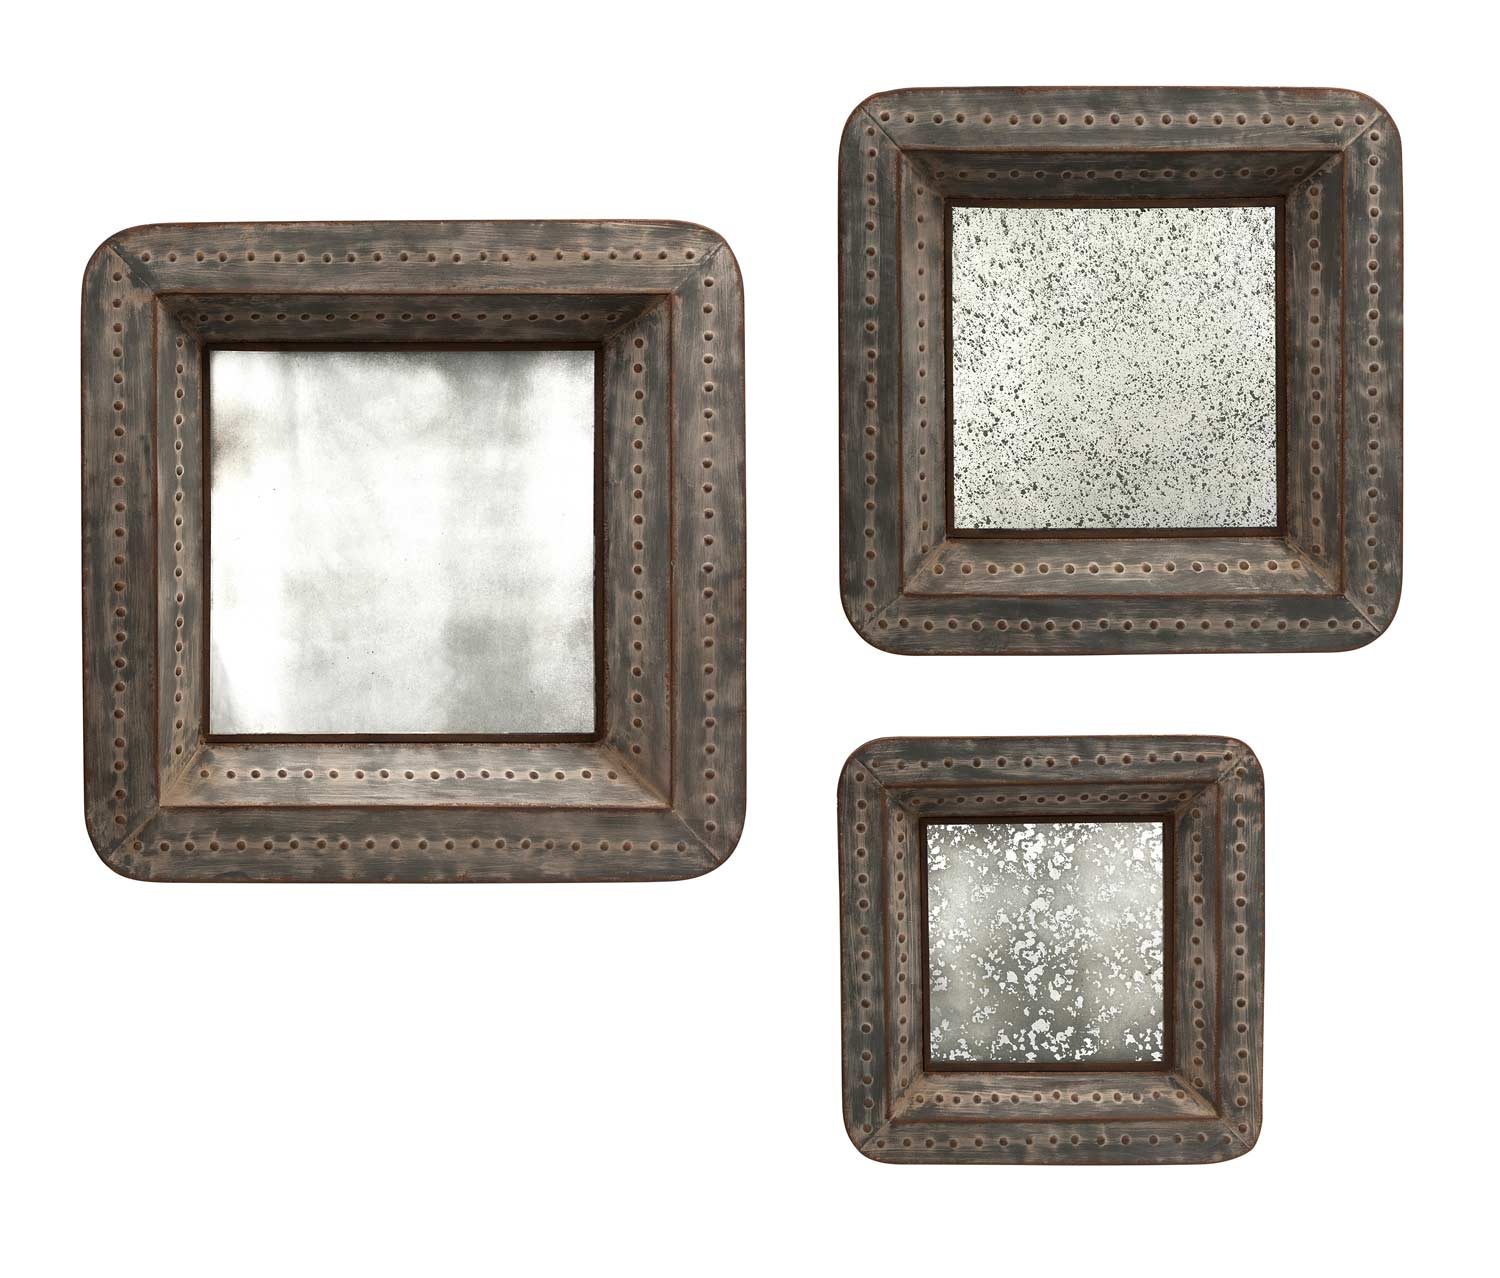 IMAX Jezant Mirror Tray Wall Decor - Set of 3